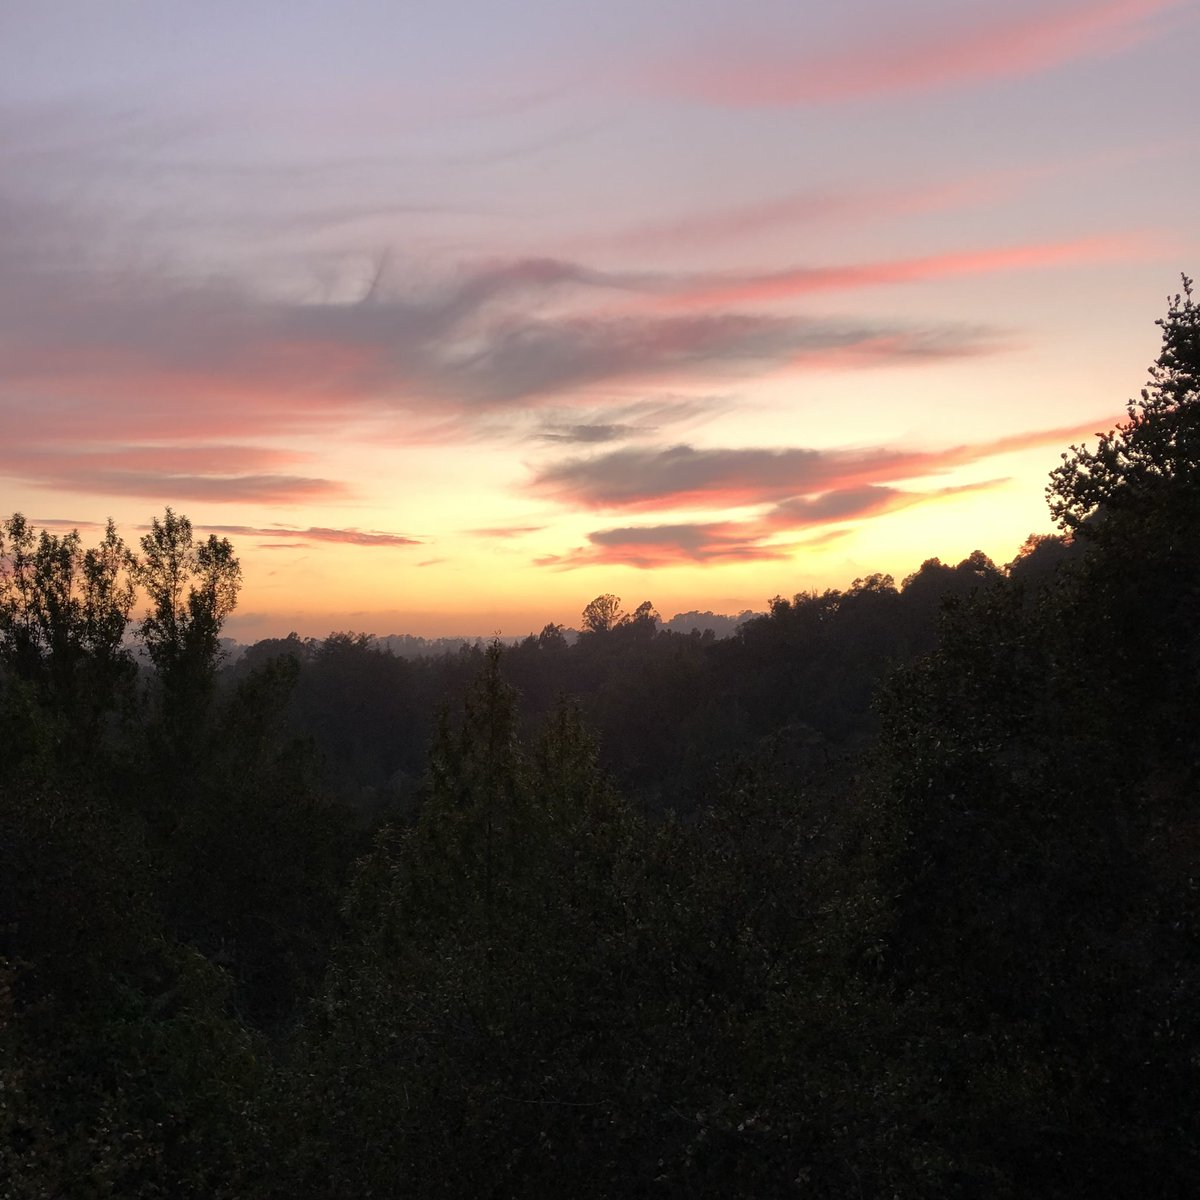 Summation of a day in residence. #amwriting #ya #author #authorslife #residency #sunset #create<br>http://pic.twitter.com/bbw0lgiXVJ